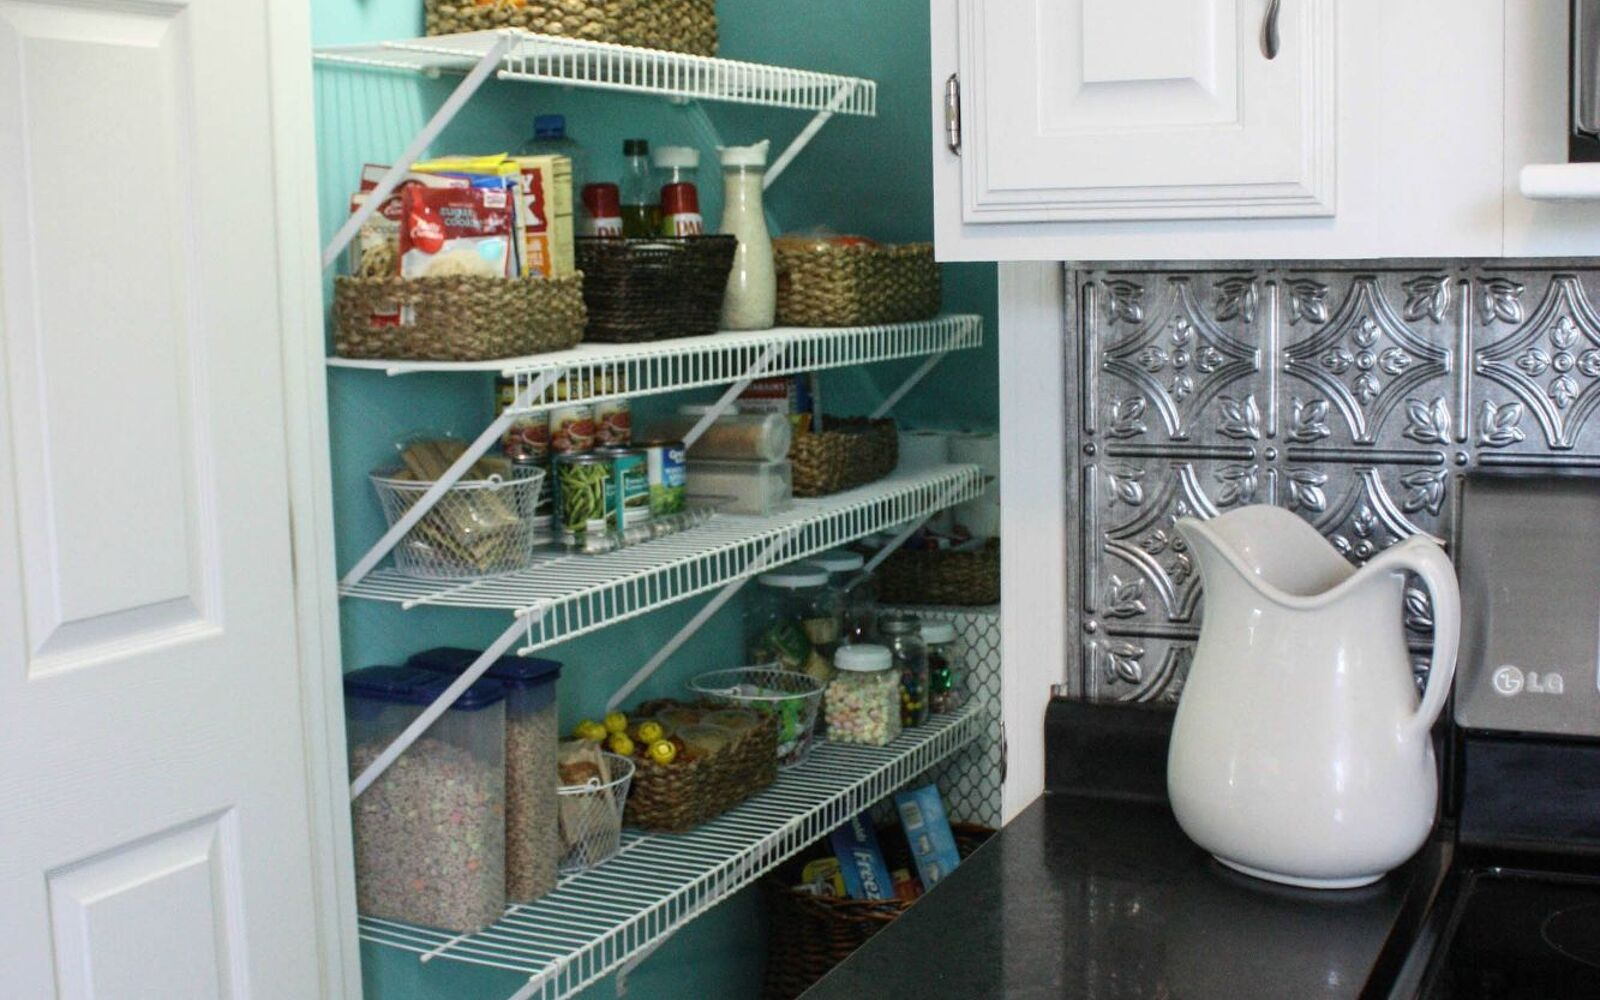 s 15 pinterest worthy pantries that eliminate search time for your favo, Press Decorative Laminate On A Air Box